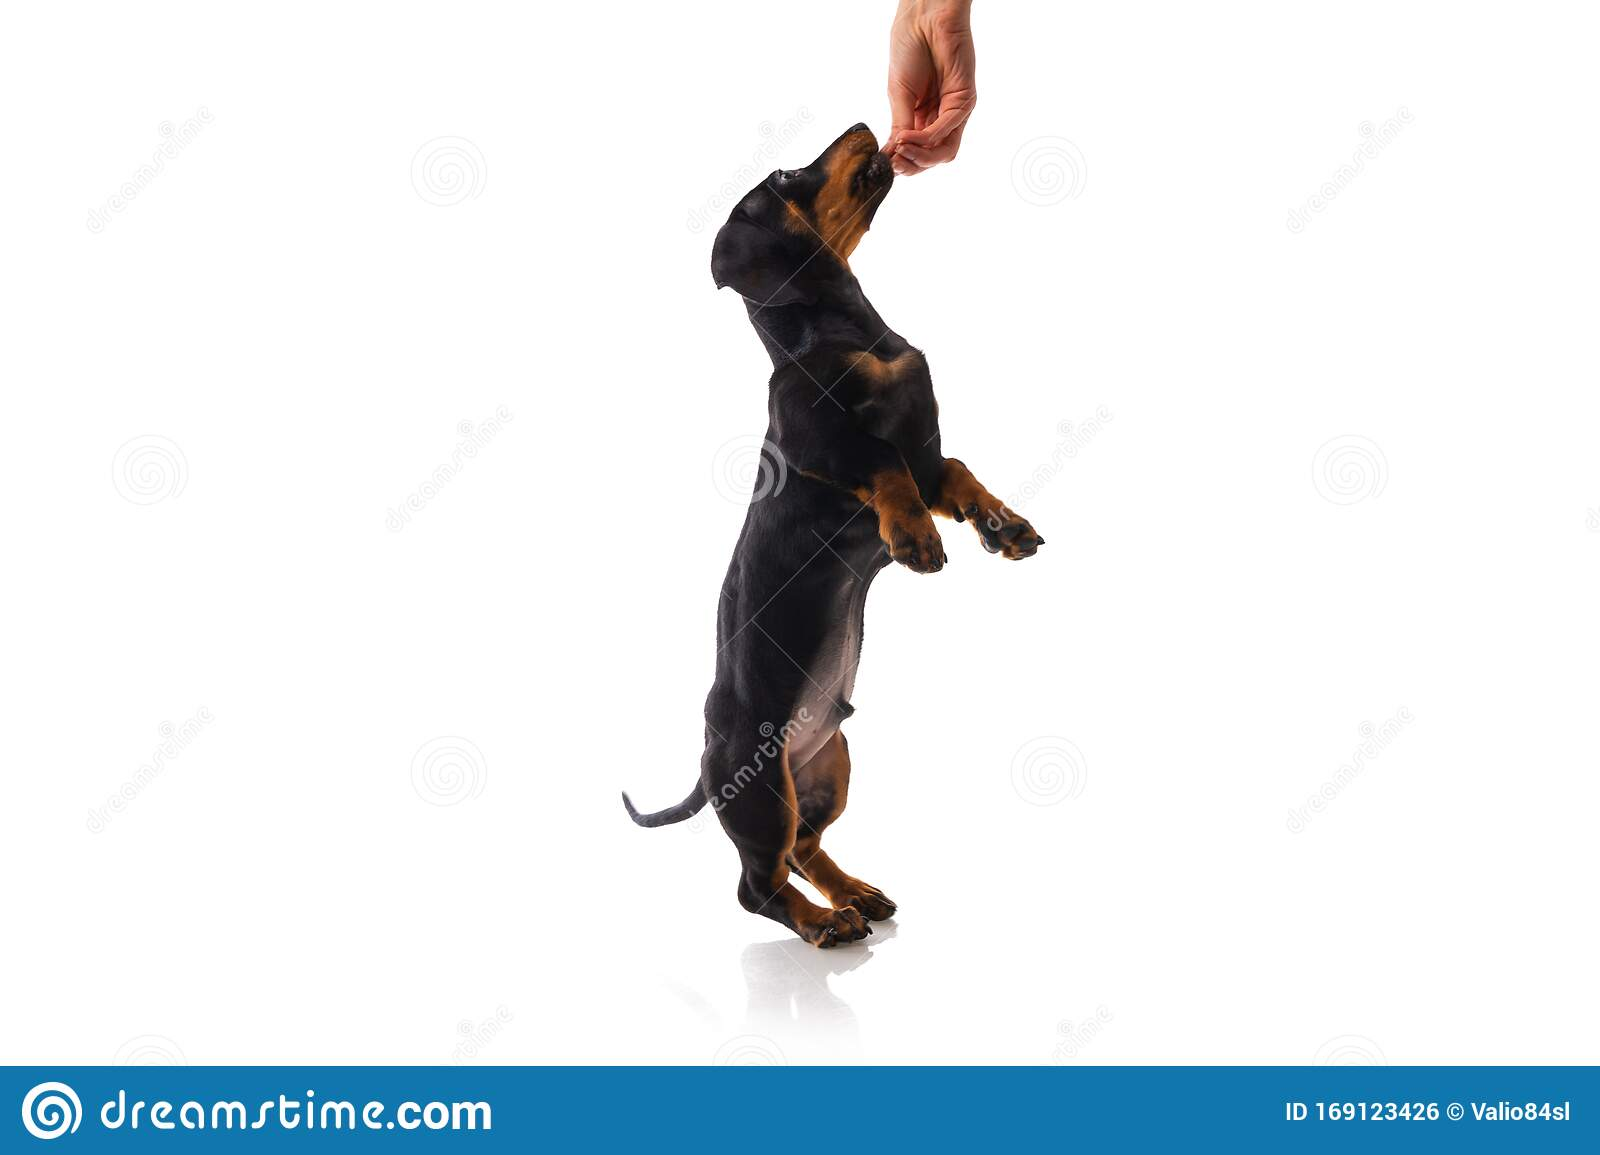 Funny Sausage Dog Dachshund Puppy Posing Isolated On White Background Stock Photo Image Of Adorable Cute 169123426